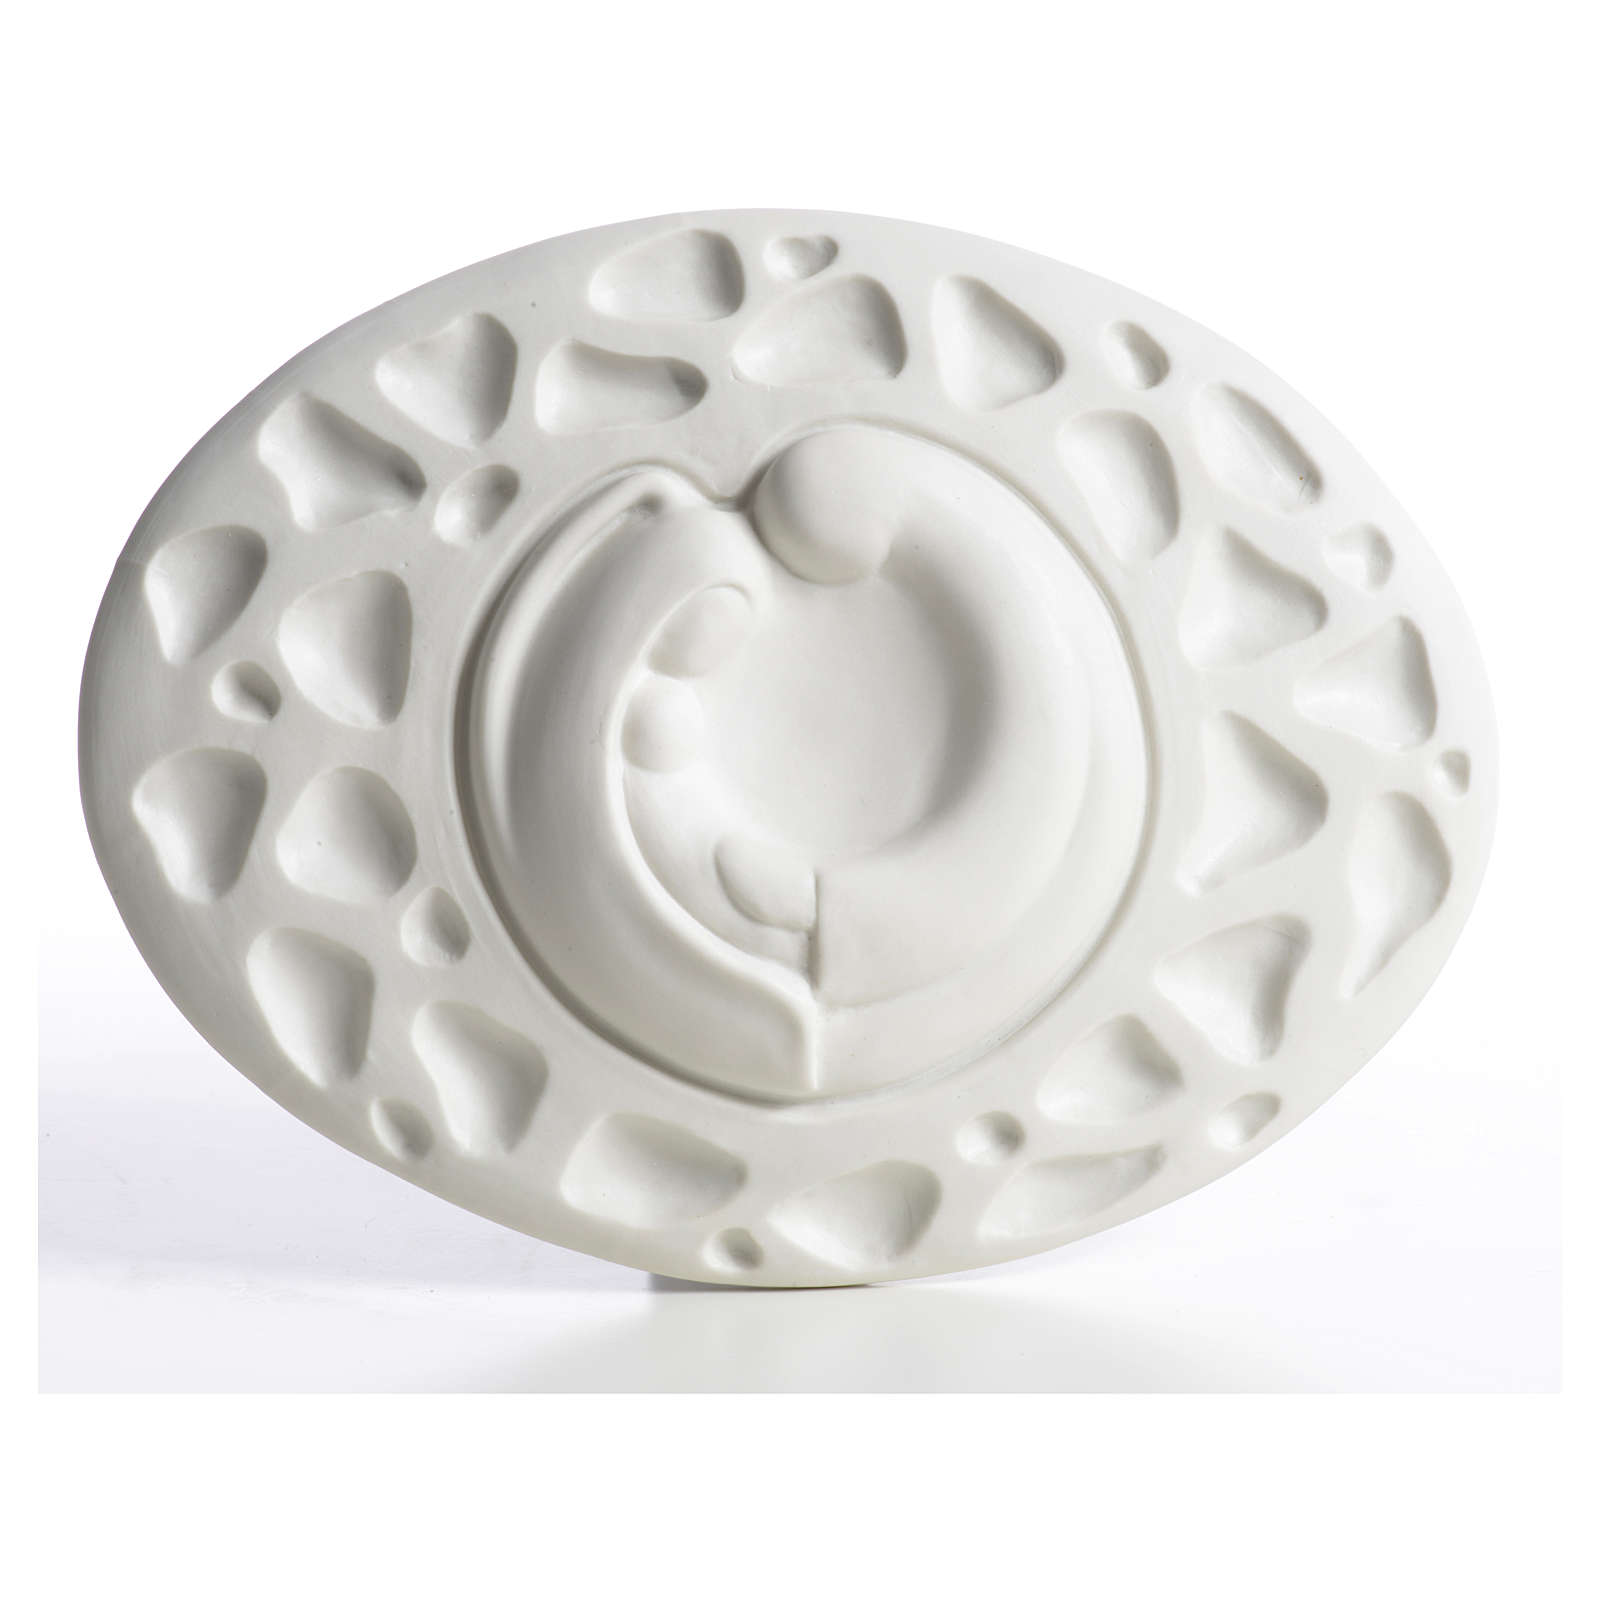 Holy Family bas-relief in porcelain by Francesco Pinton 15 cm 4